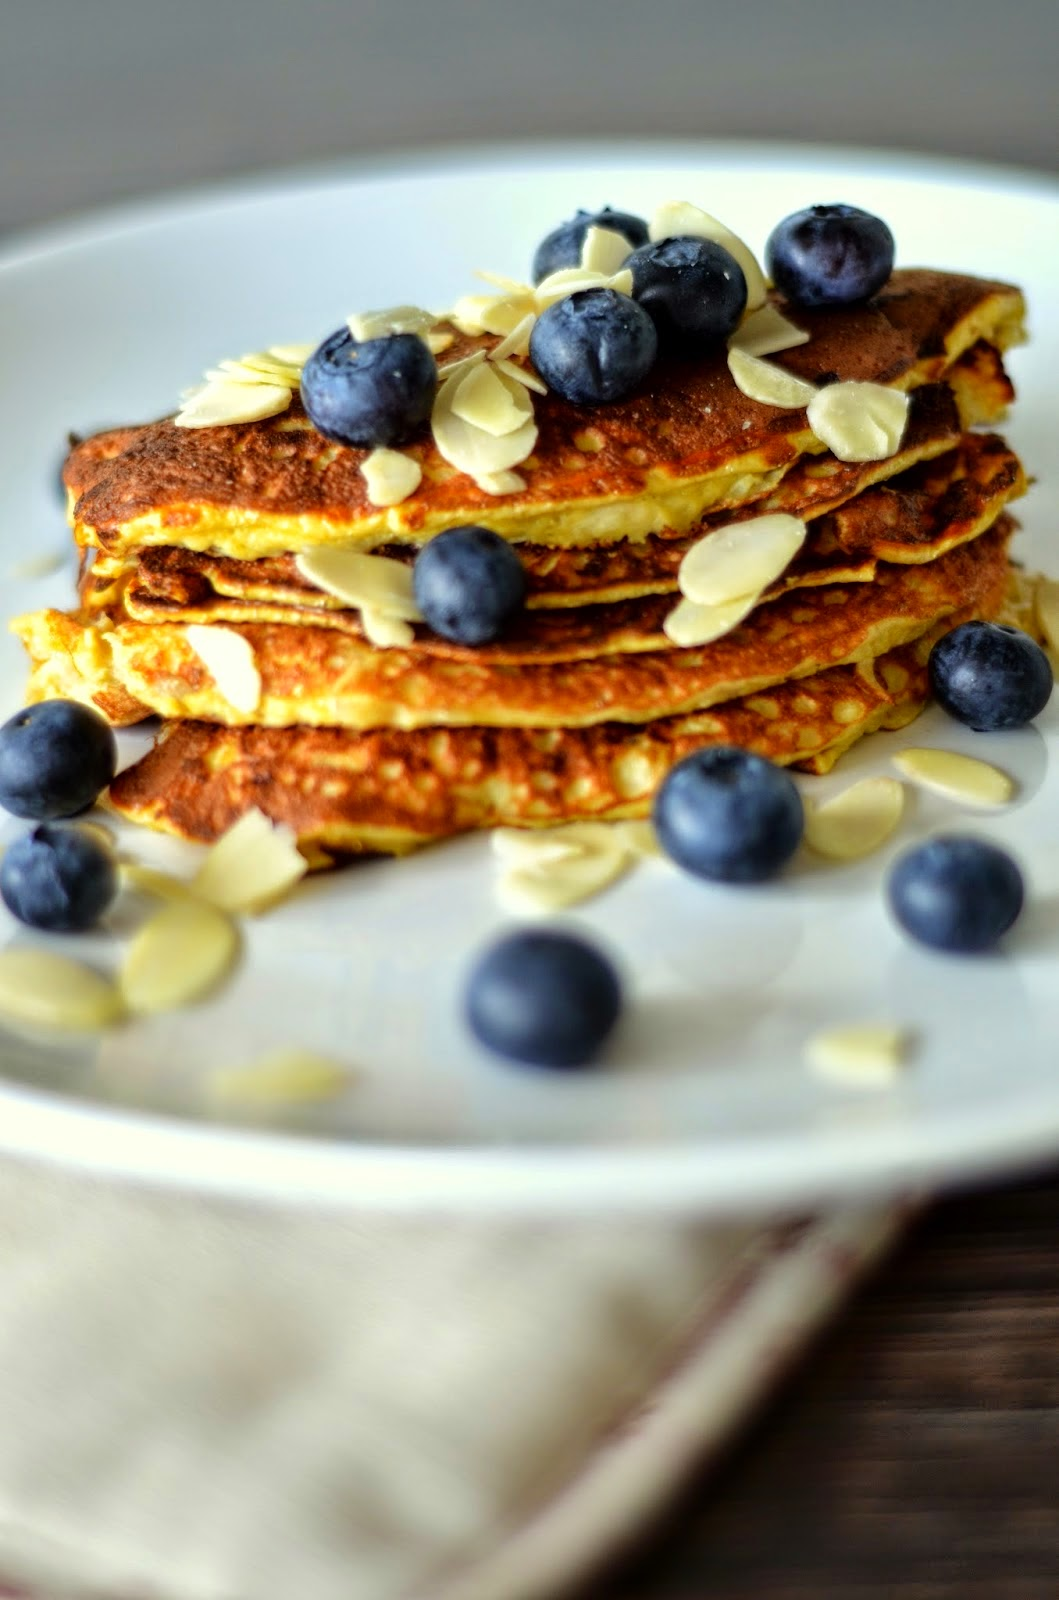 clean-healthy-glutein-free-banana-pancakes-blueberries